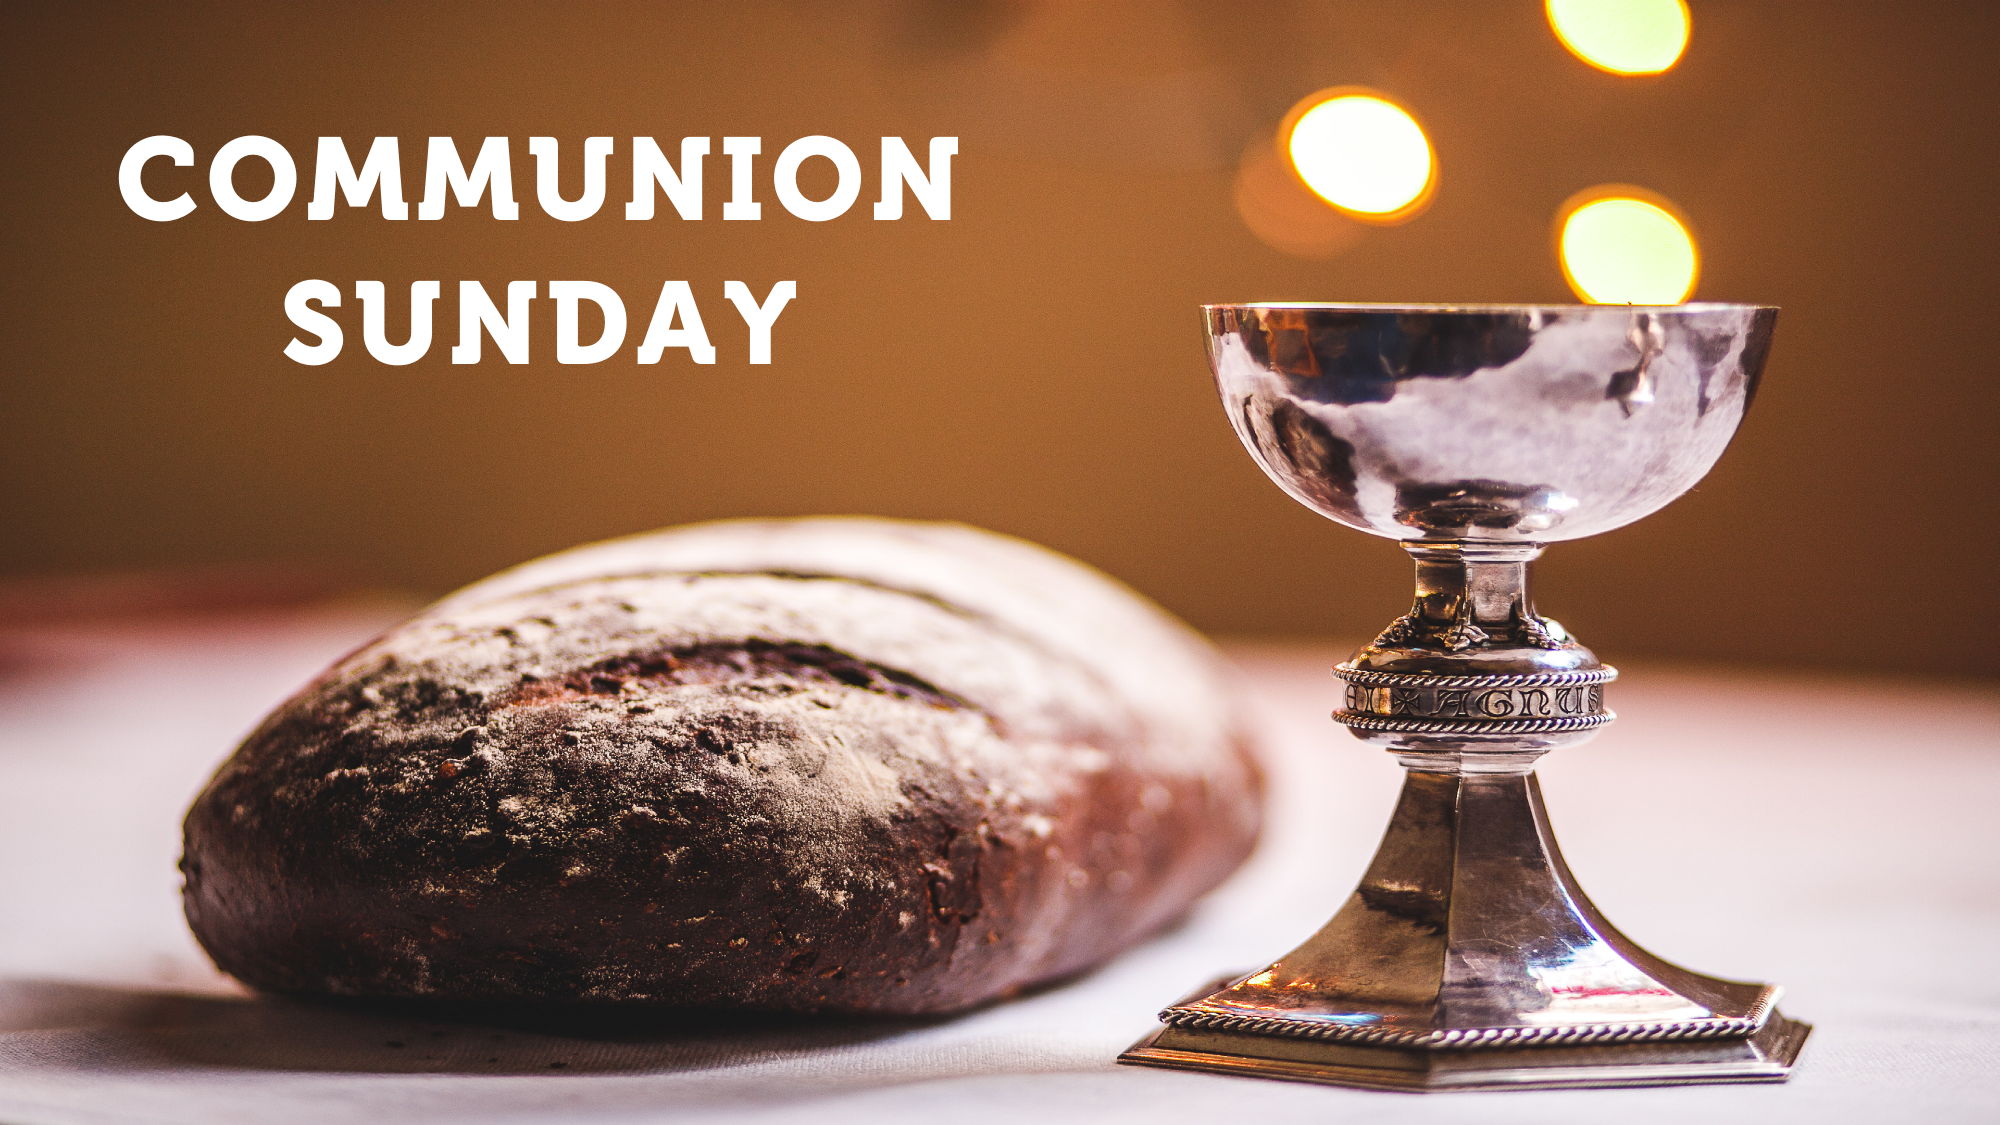 bread and chalice for communion